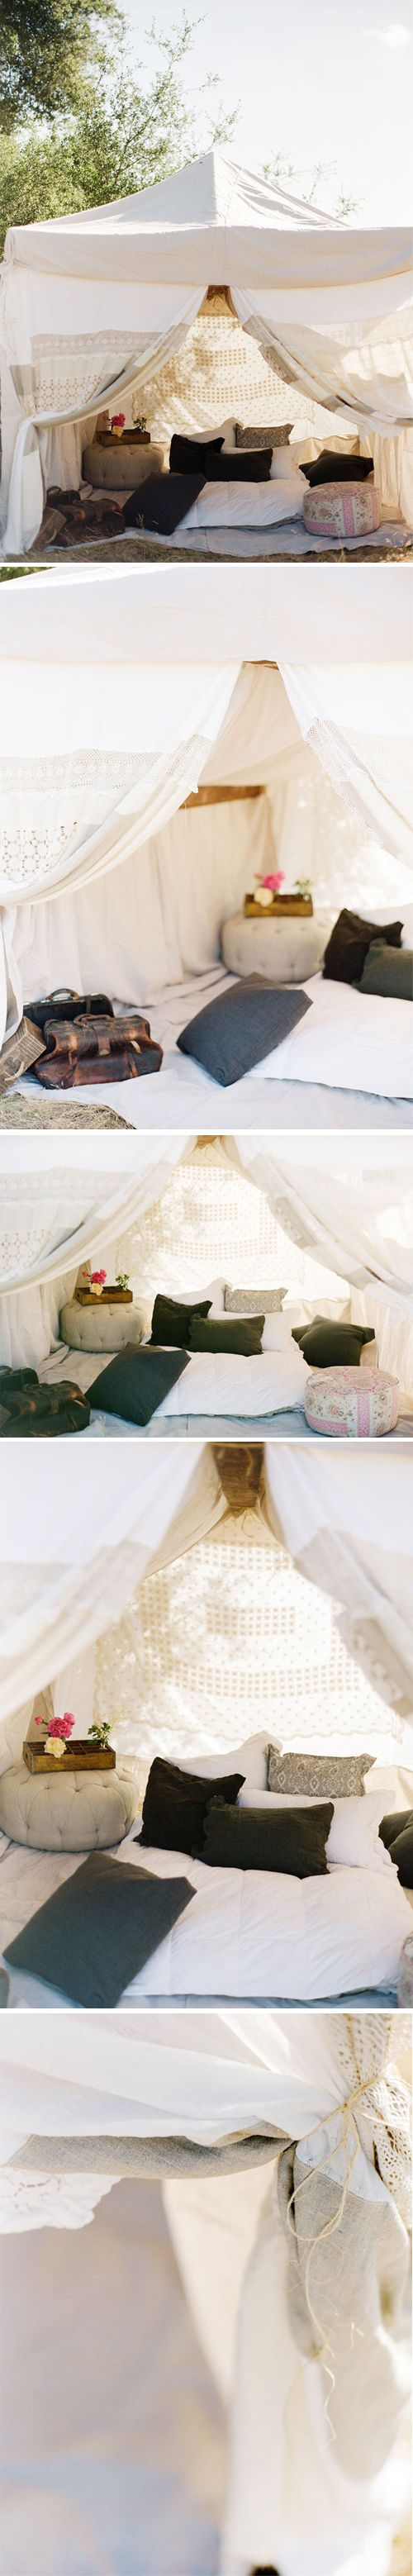 98 best wedding tents and unique spaces images on pinterest